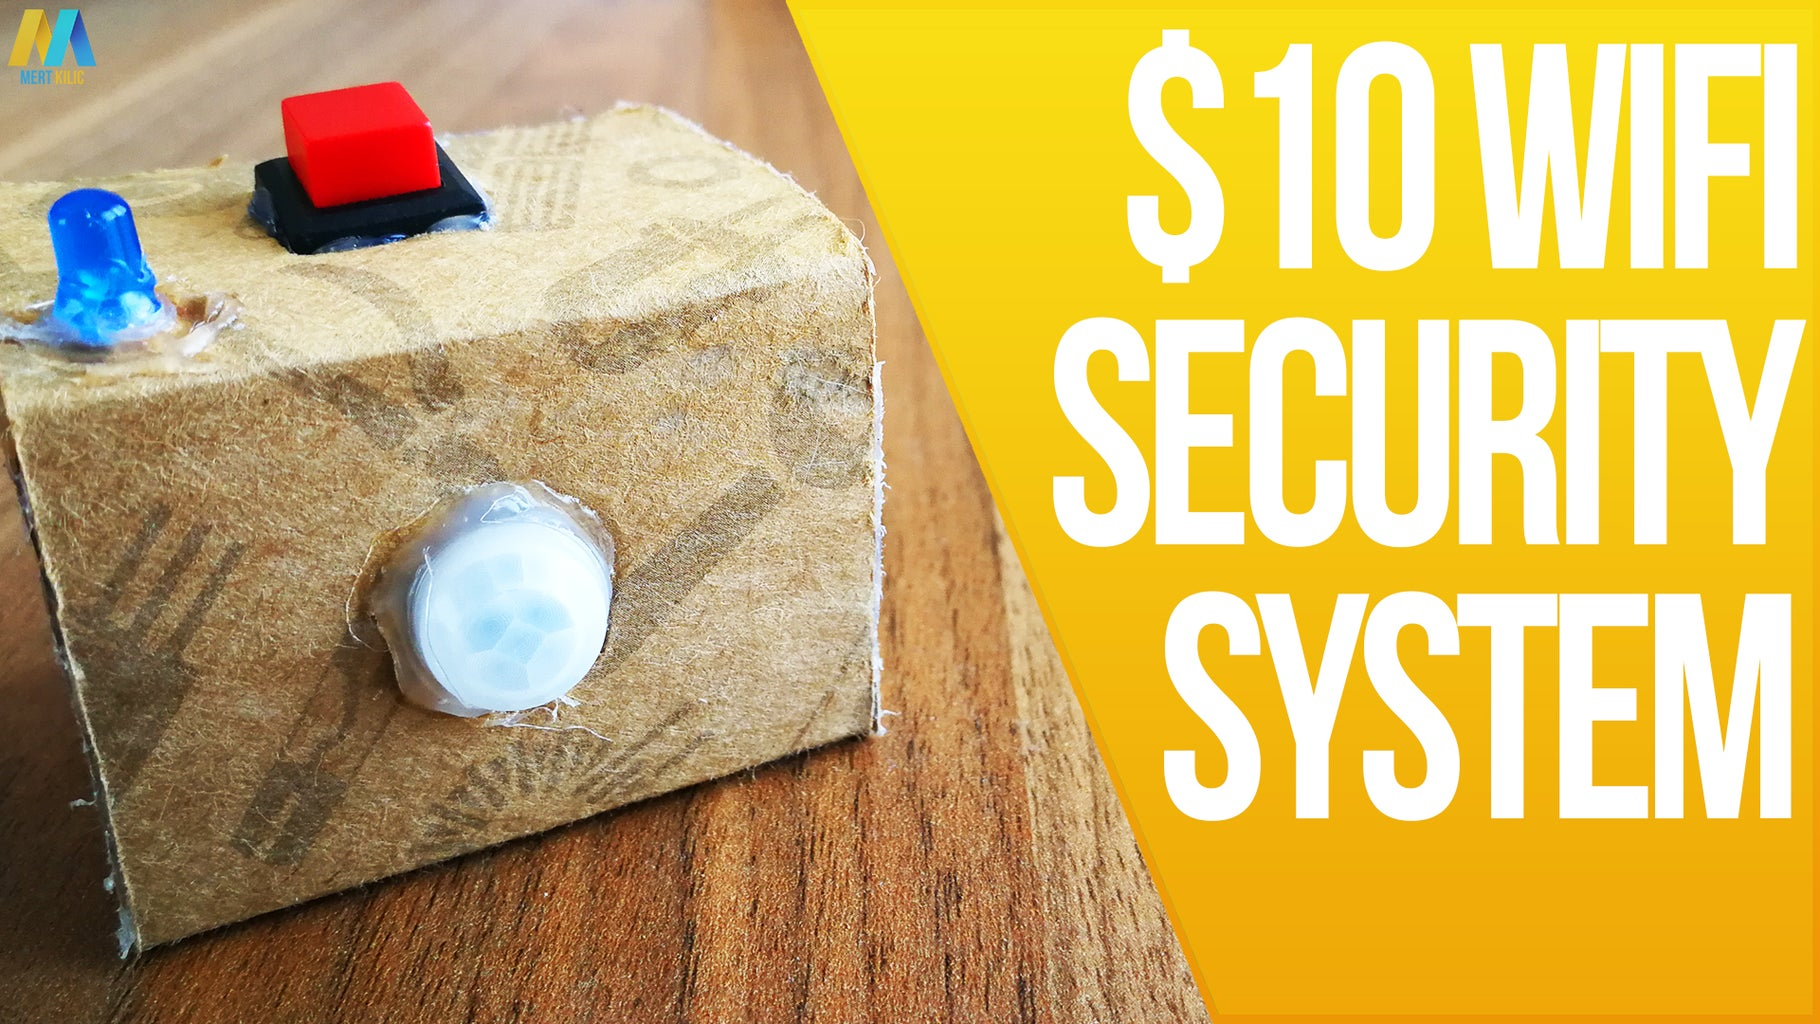 How to Make a $10 WiFi Security System at Home? No Fees and Works Anywhere!